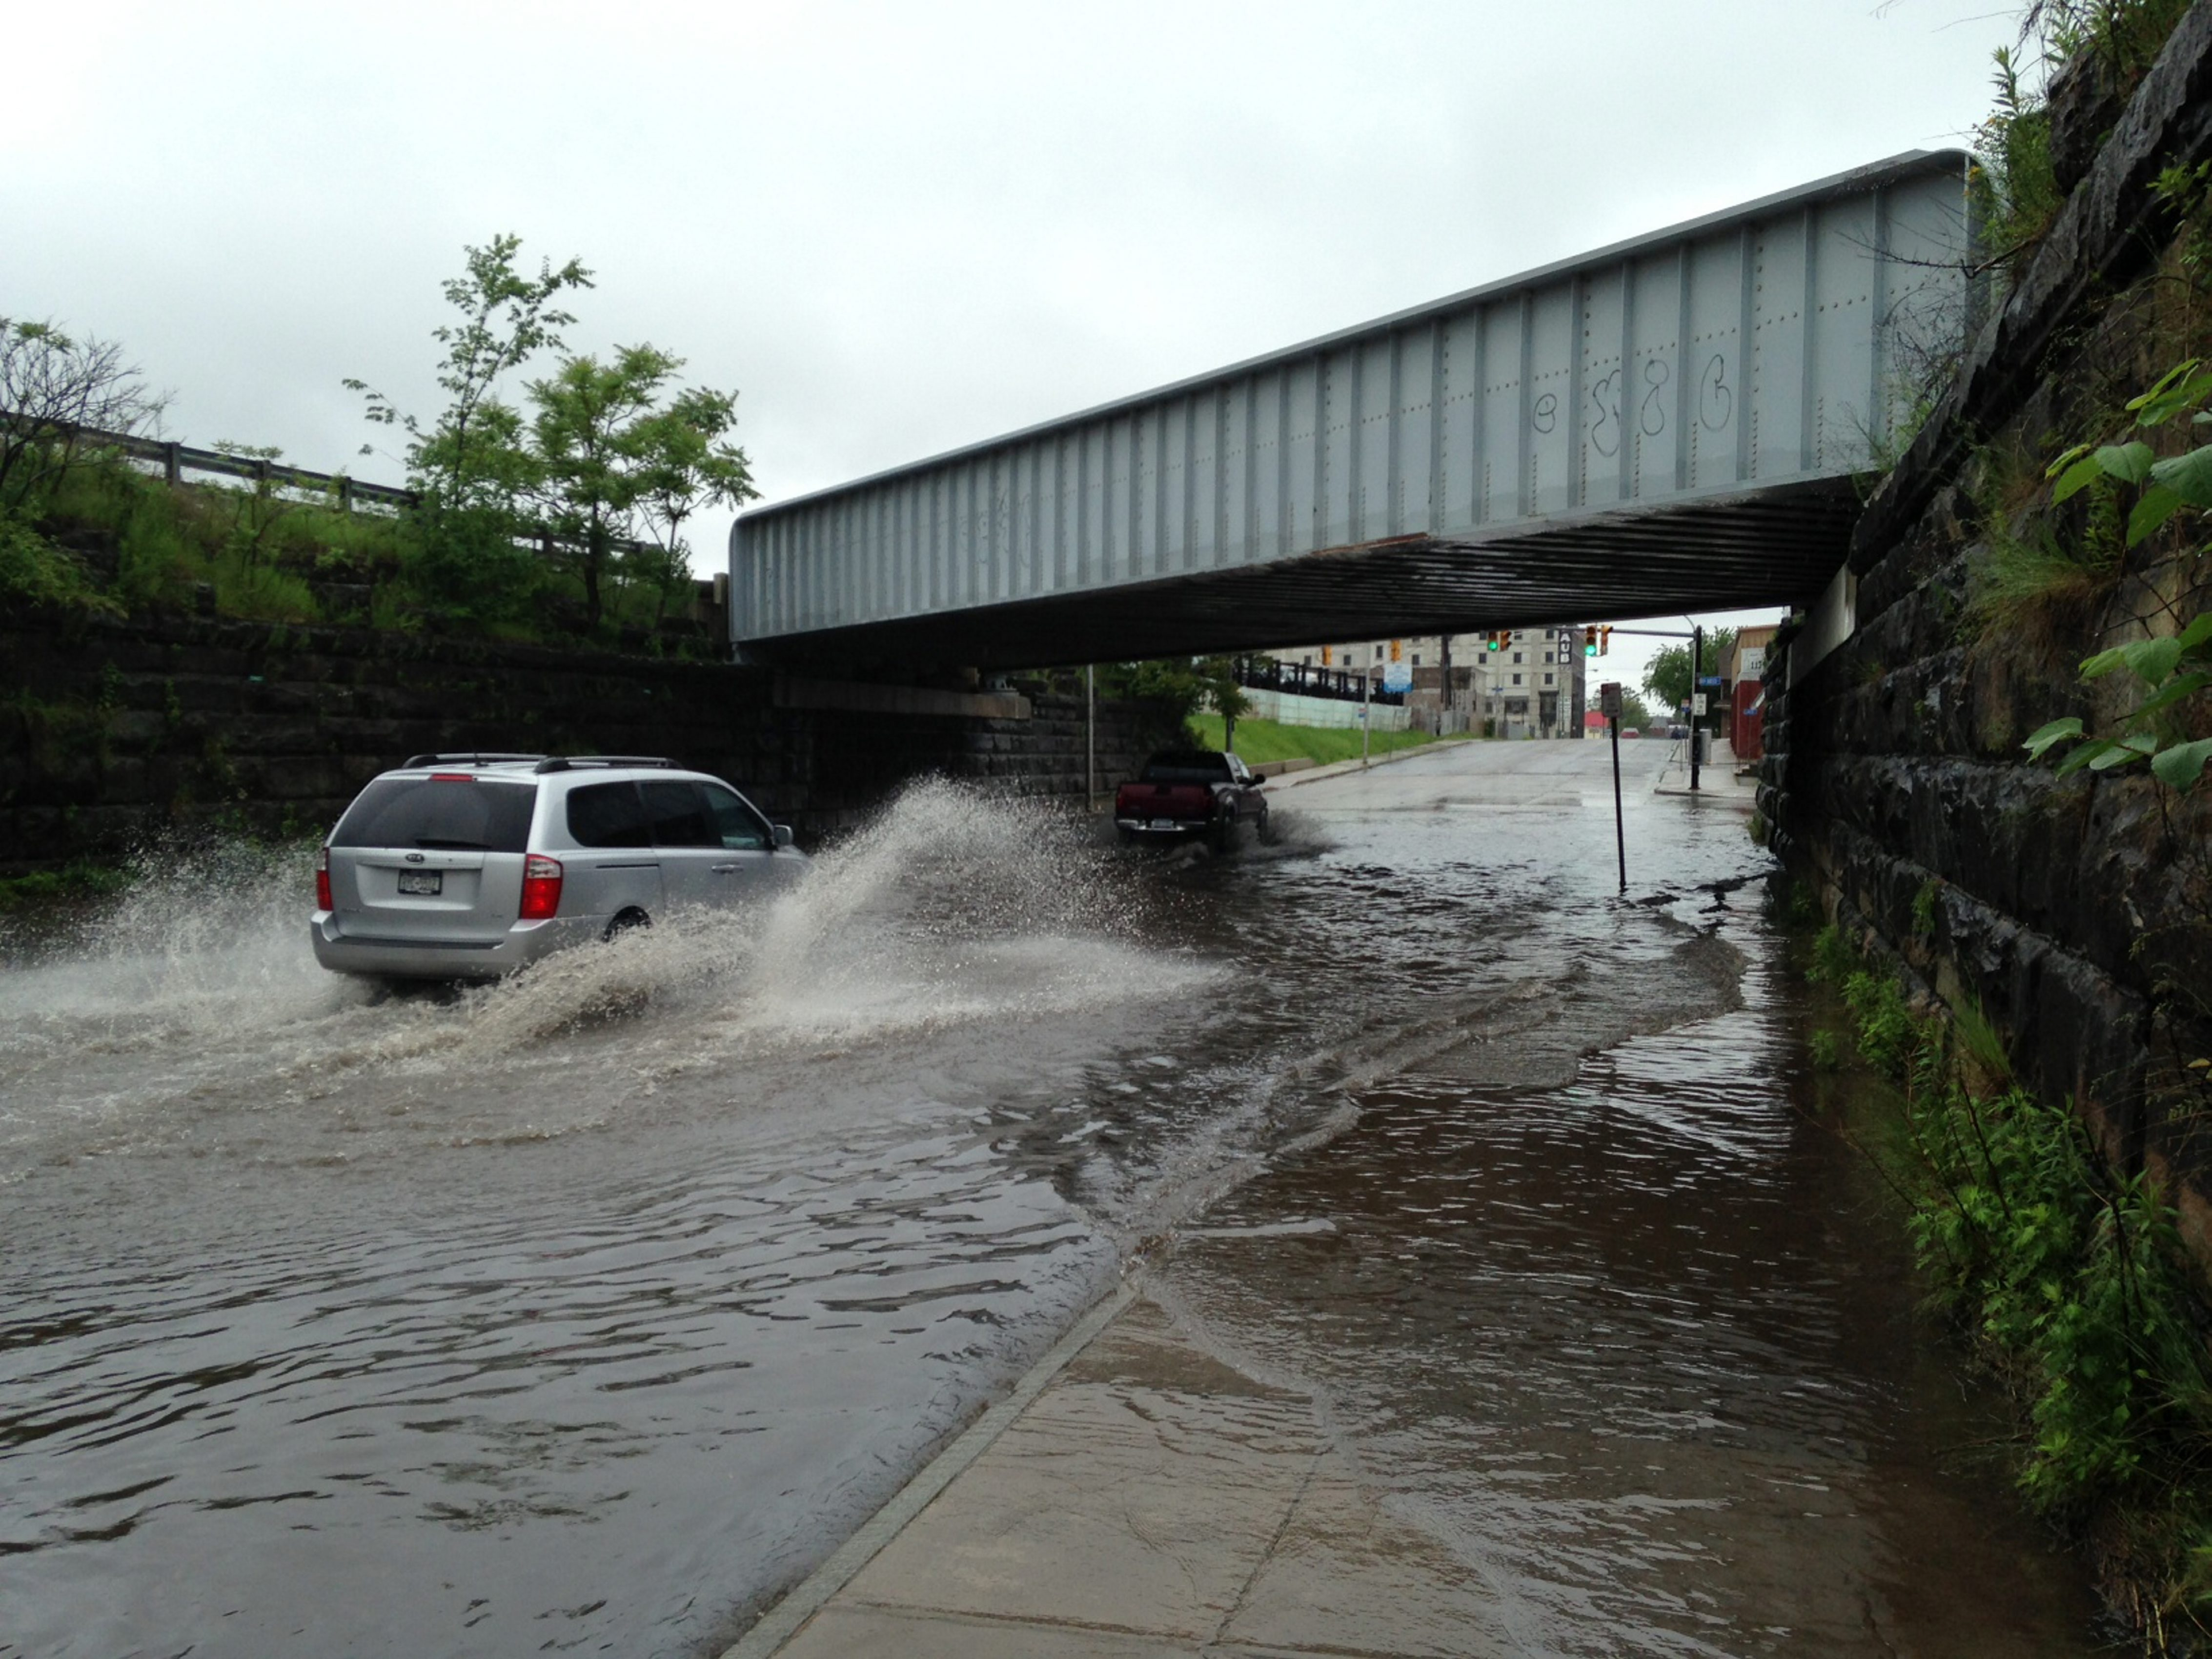 A car navigates flooded area under the train bridge on Clinton Street in Buffalo today. (Photo by Robert Kirkham)